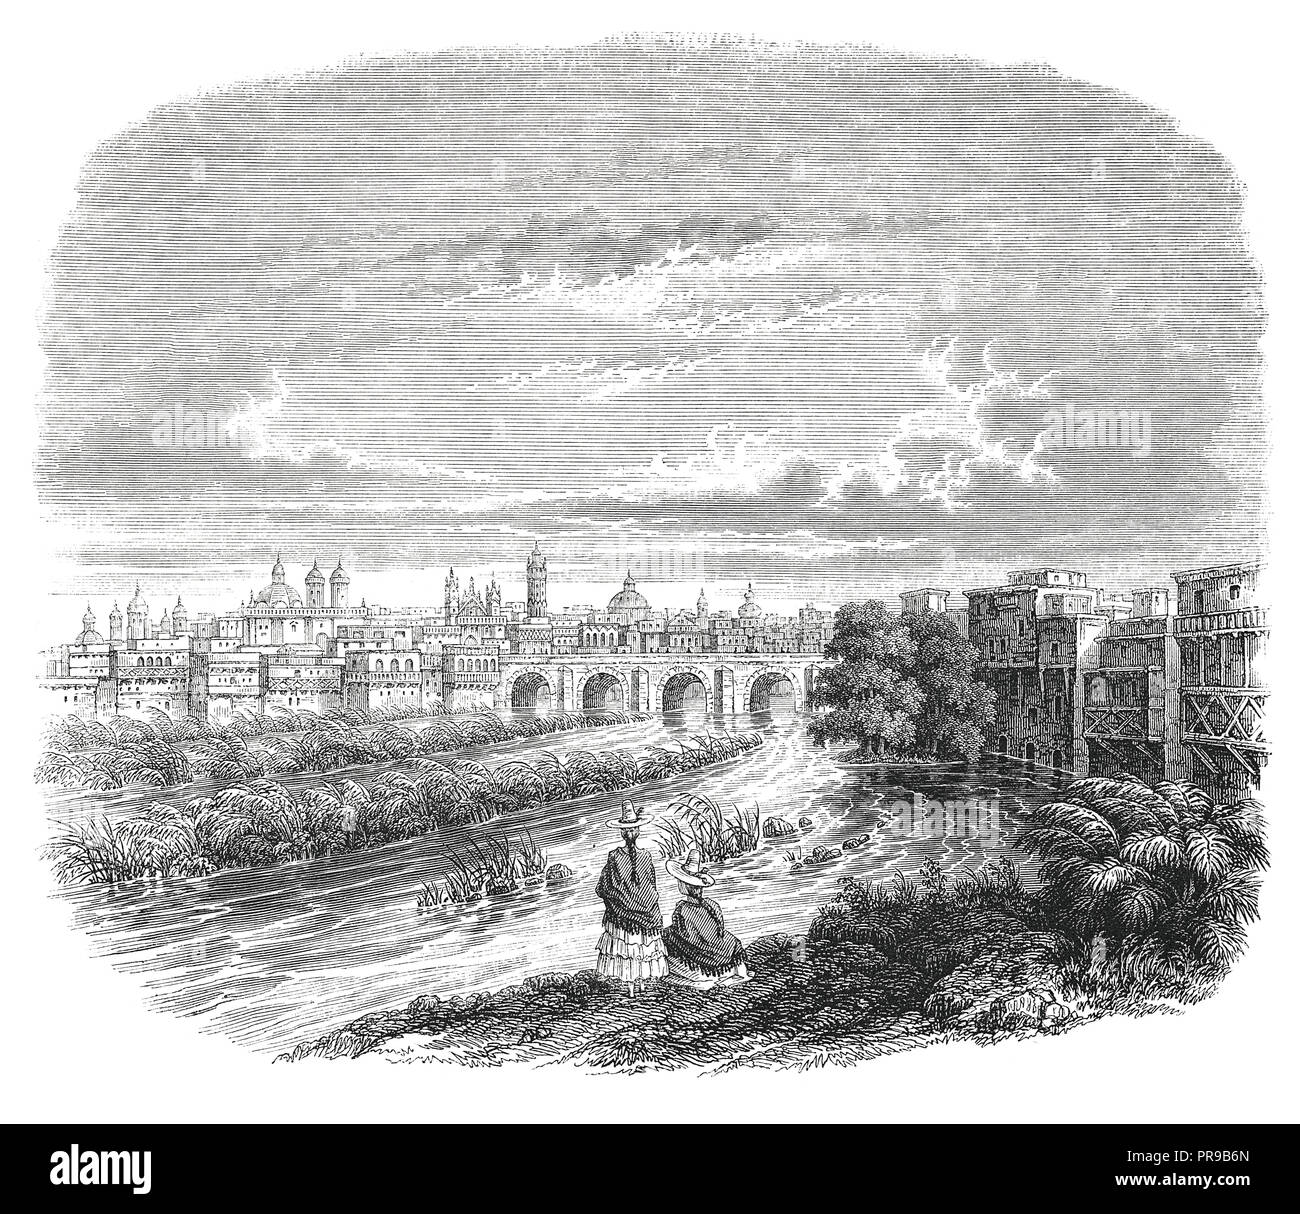 19th century illustration of landscape of Lima, capital of Perou, since 1844. Drawing by Max Radiguet. Original artwork published in Le magasin Pittor - Stock Image